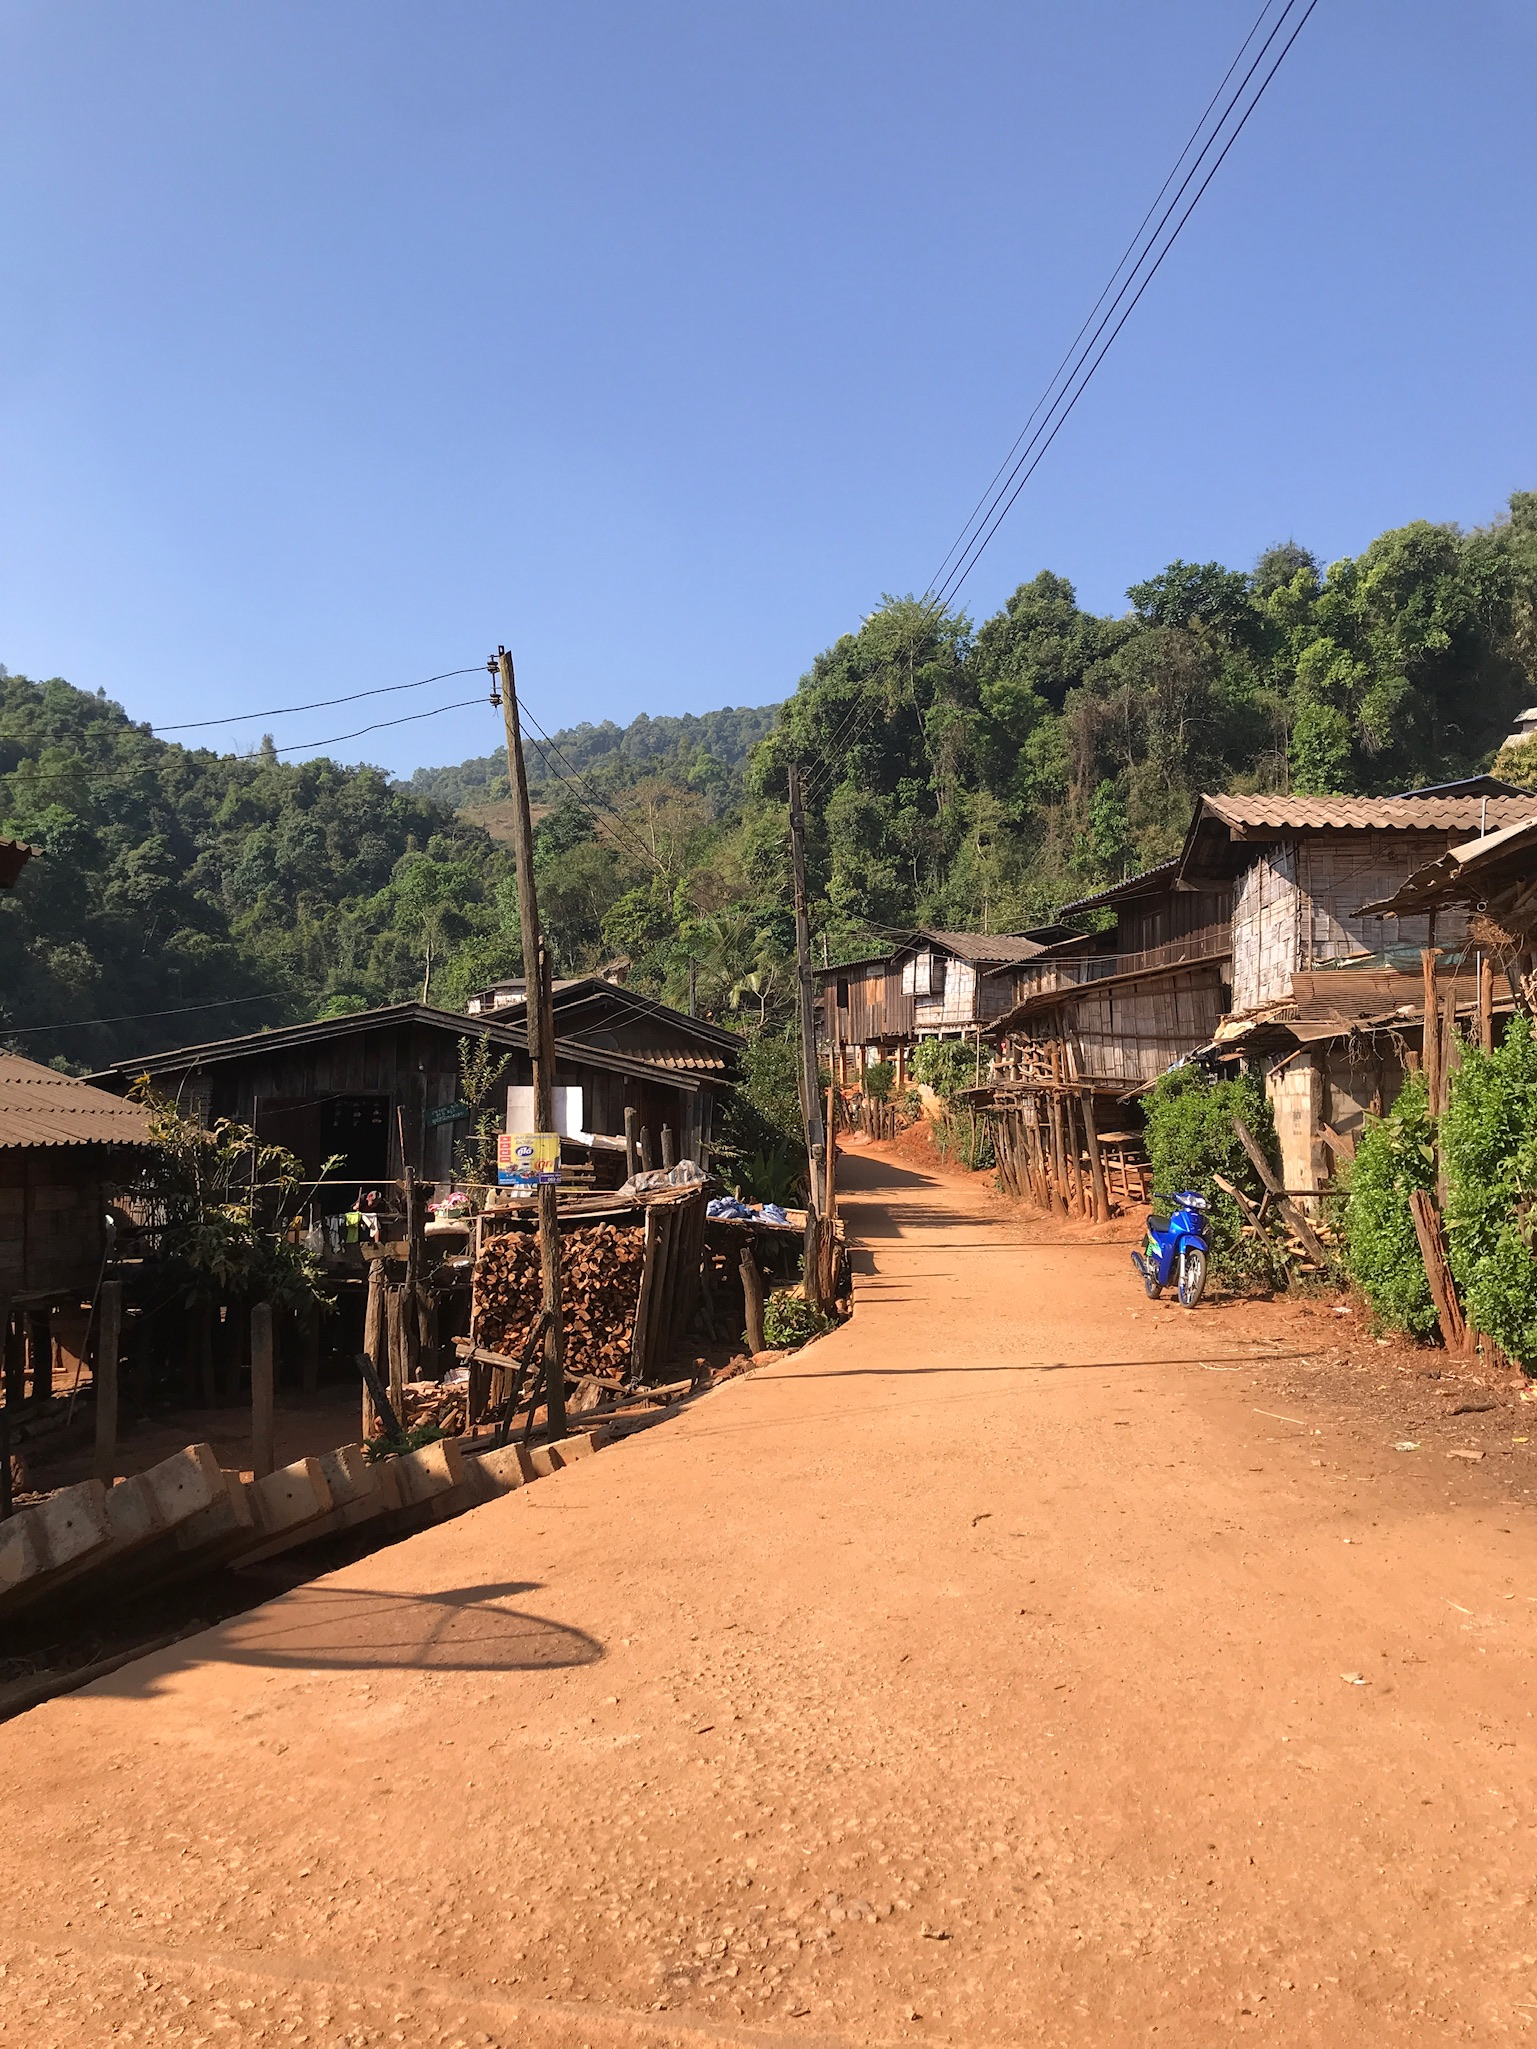 Our first view of our home in the Lahu Hill Tribe village, unloading our weary, happy selves and backpacks from the back of a pickup truck after a nauseating yet beautiful ride up winding mountains 2 hours north from Chiang Mai.